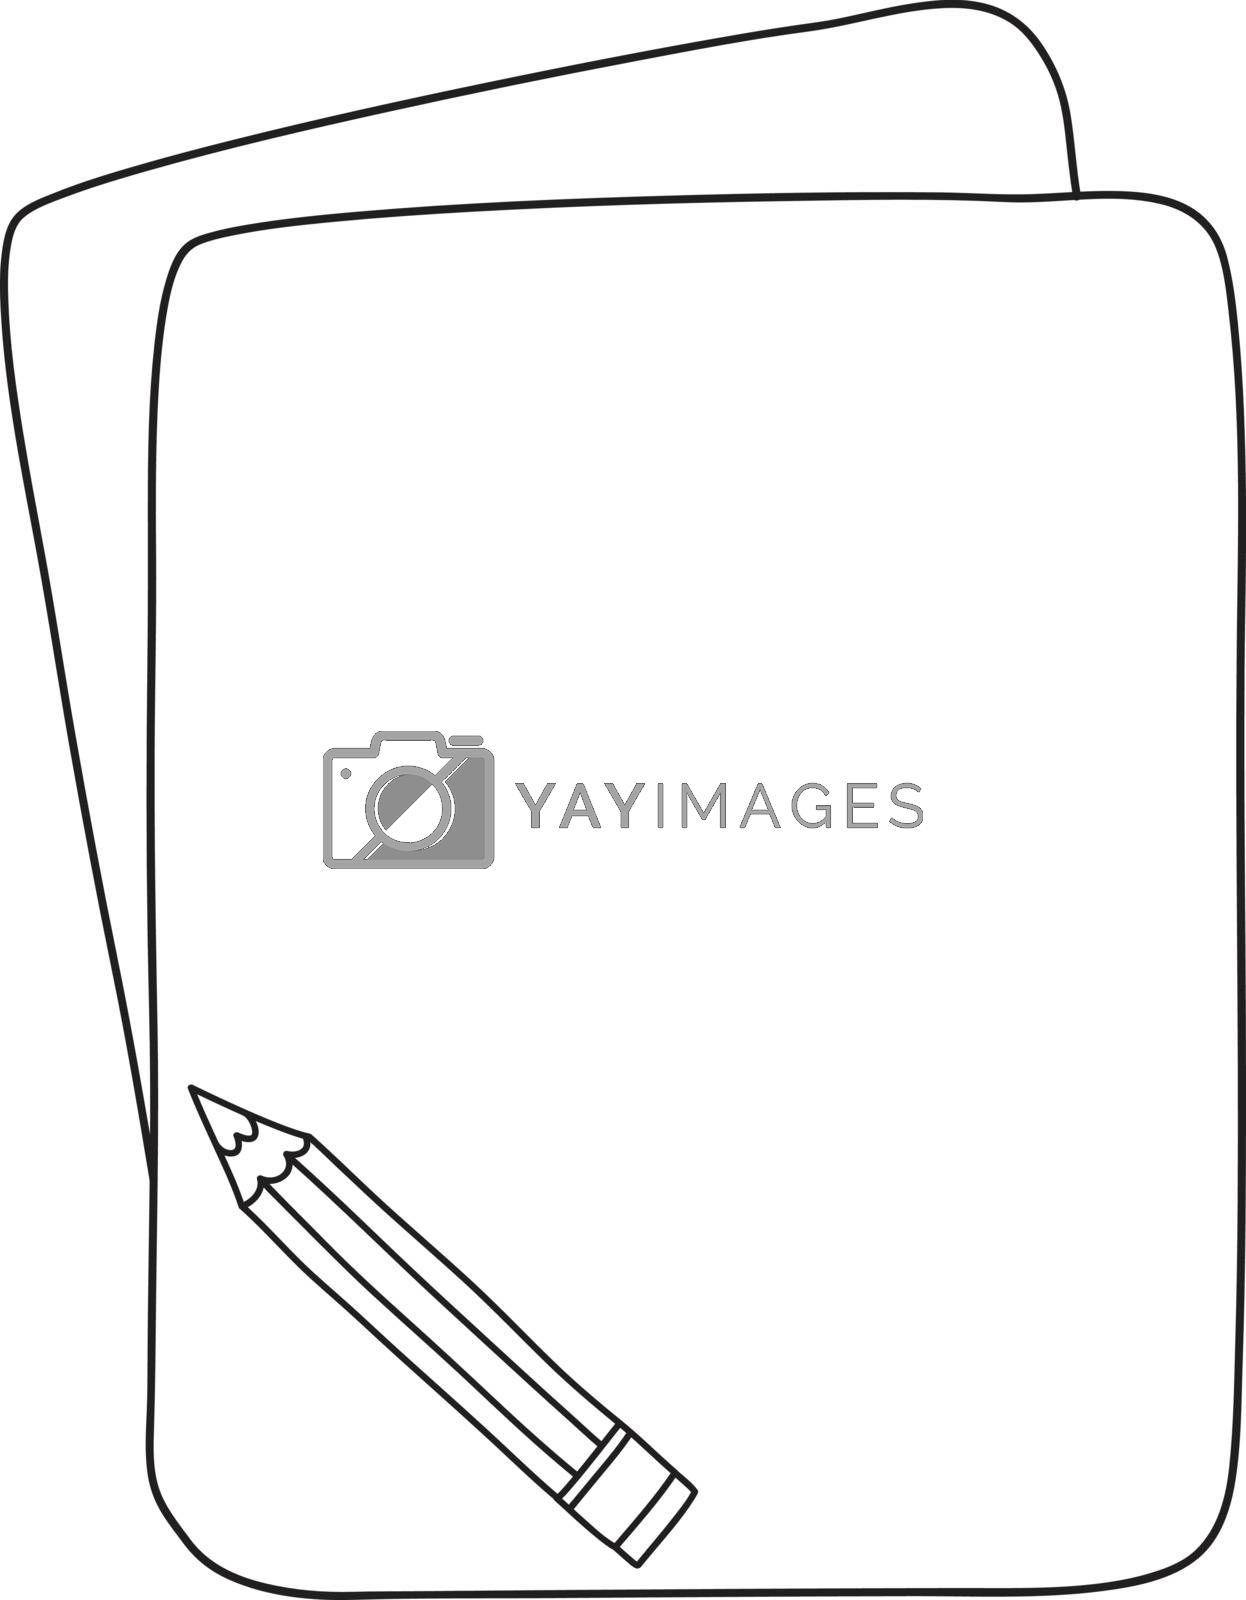 pencil and notebook hand deawn cute line art vector illustration